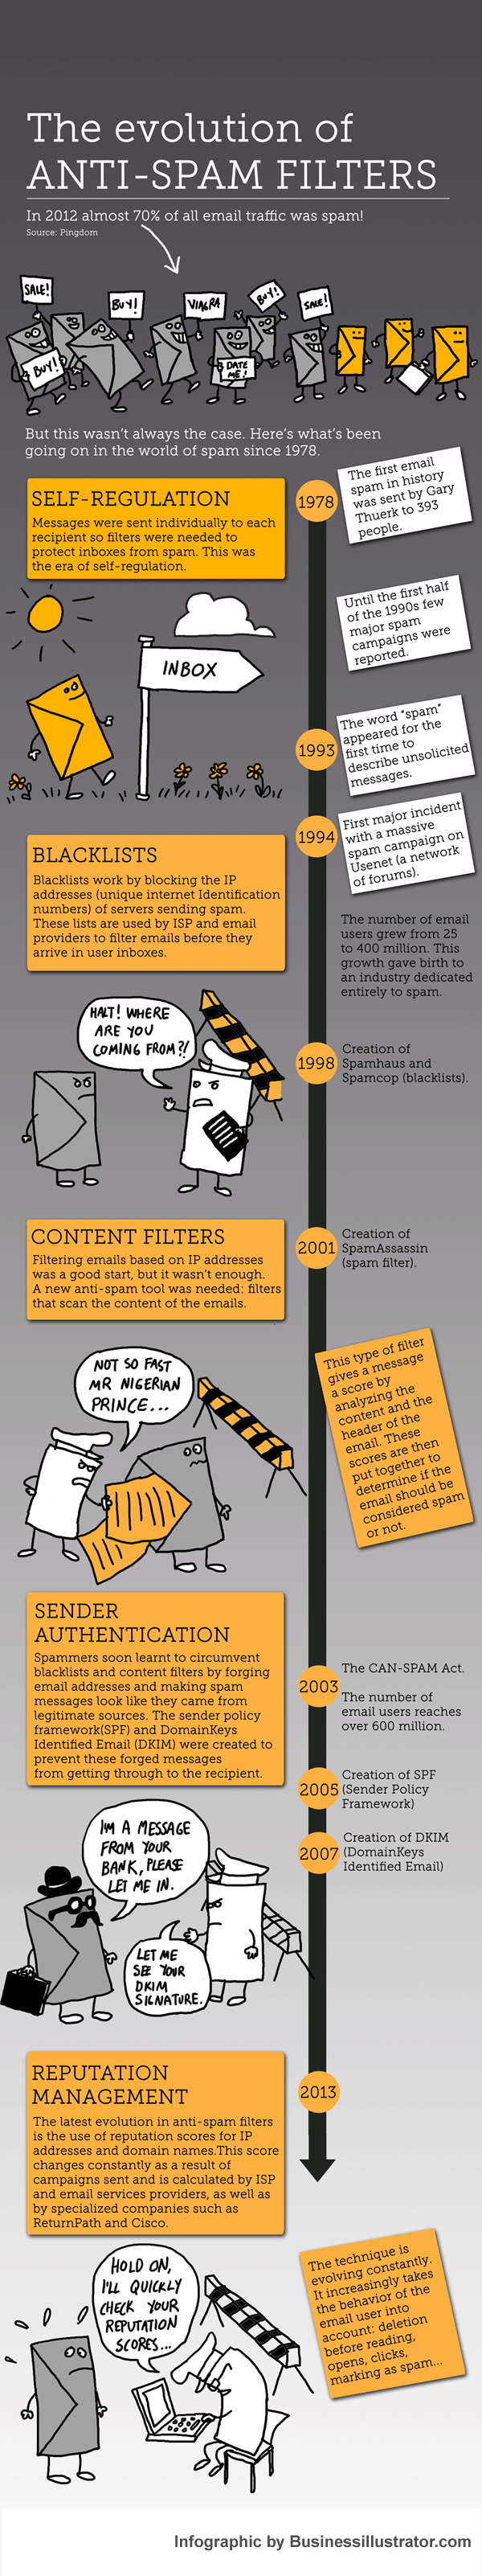 How do spam filters work infographic by Businessillustrator.com